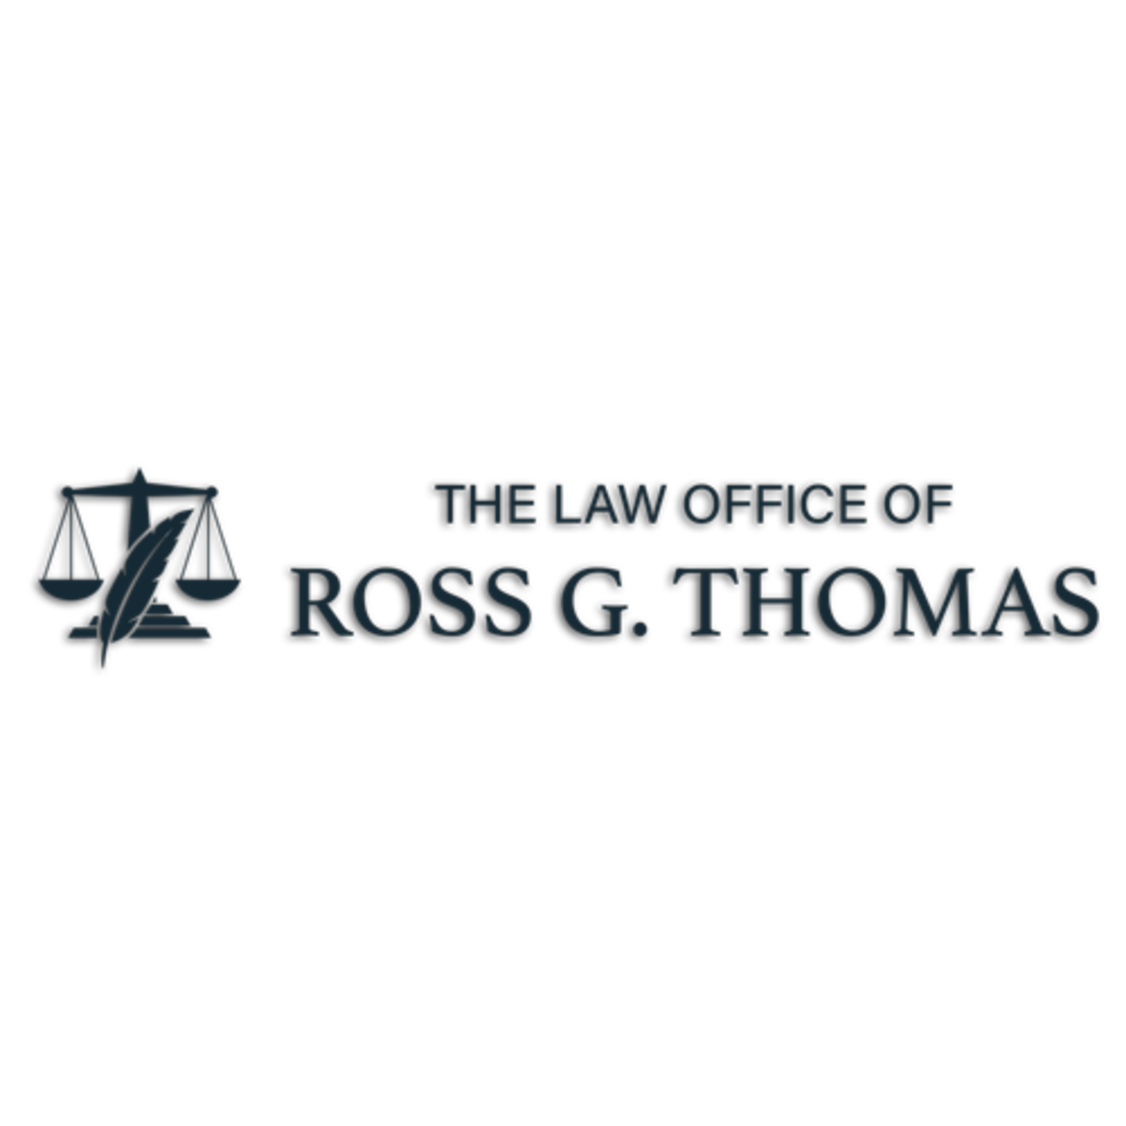 The Law Office of Ross G. Thomas